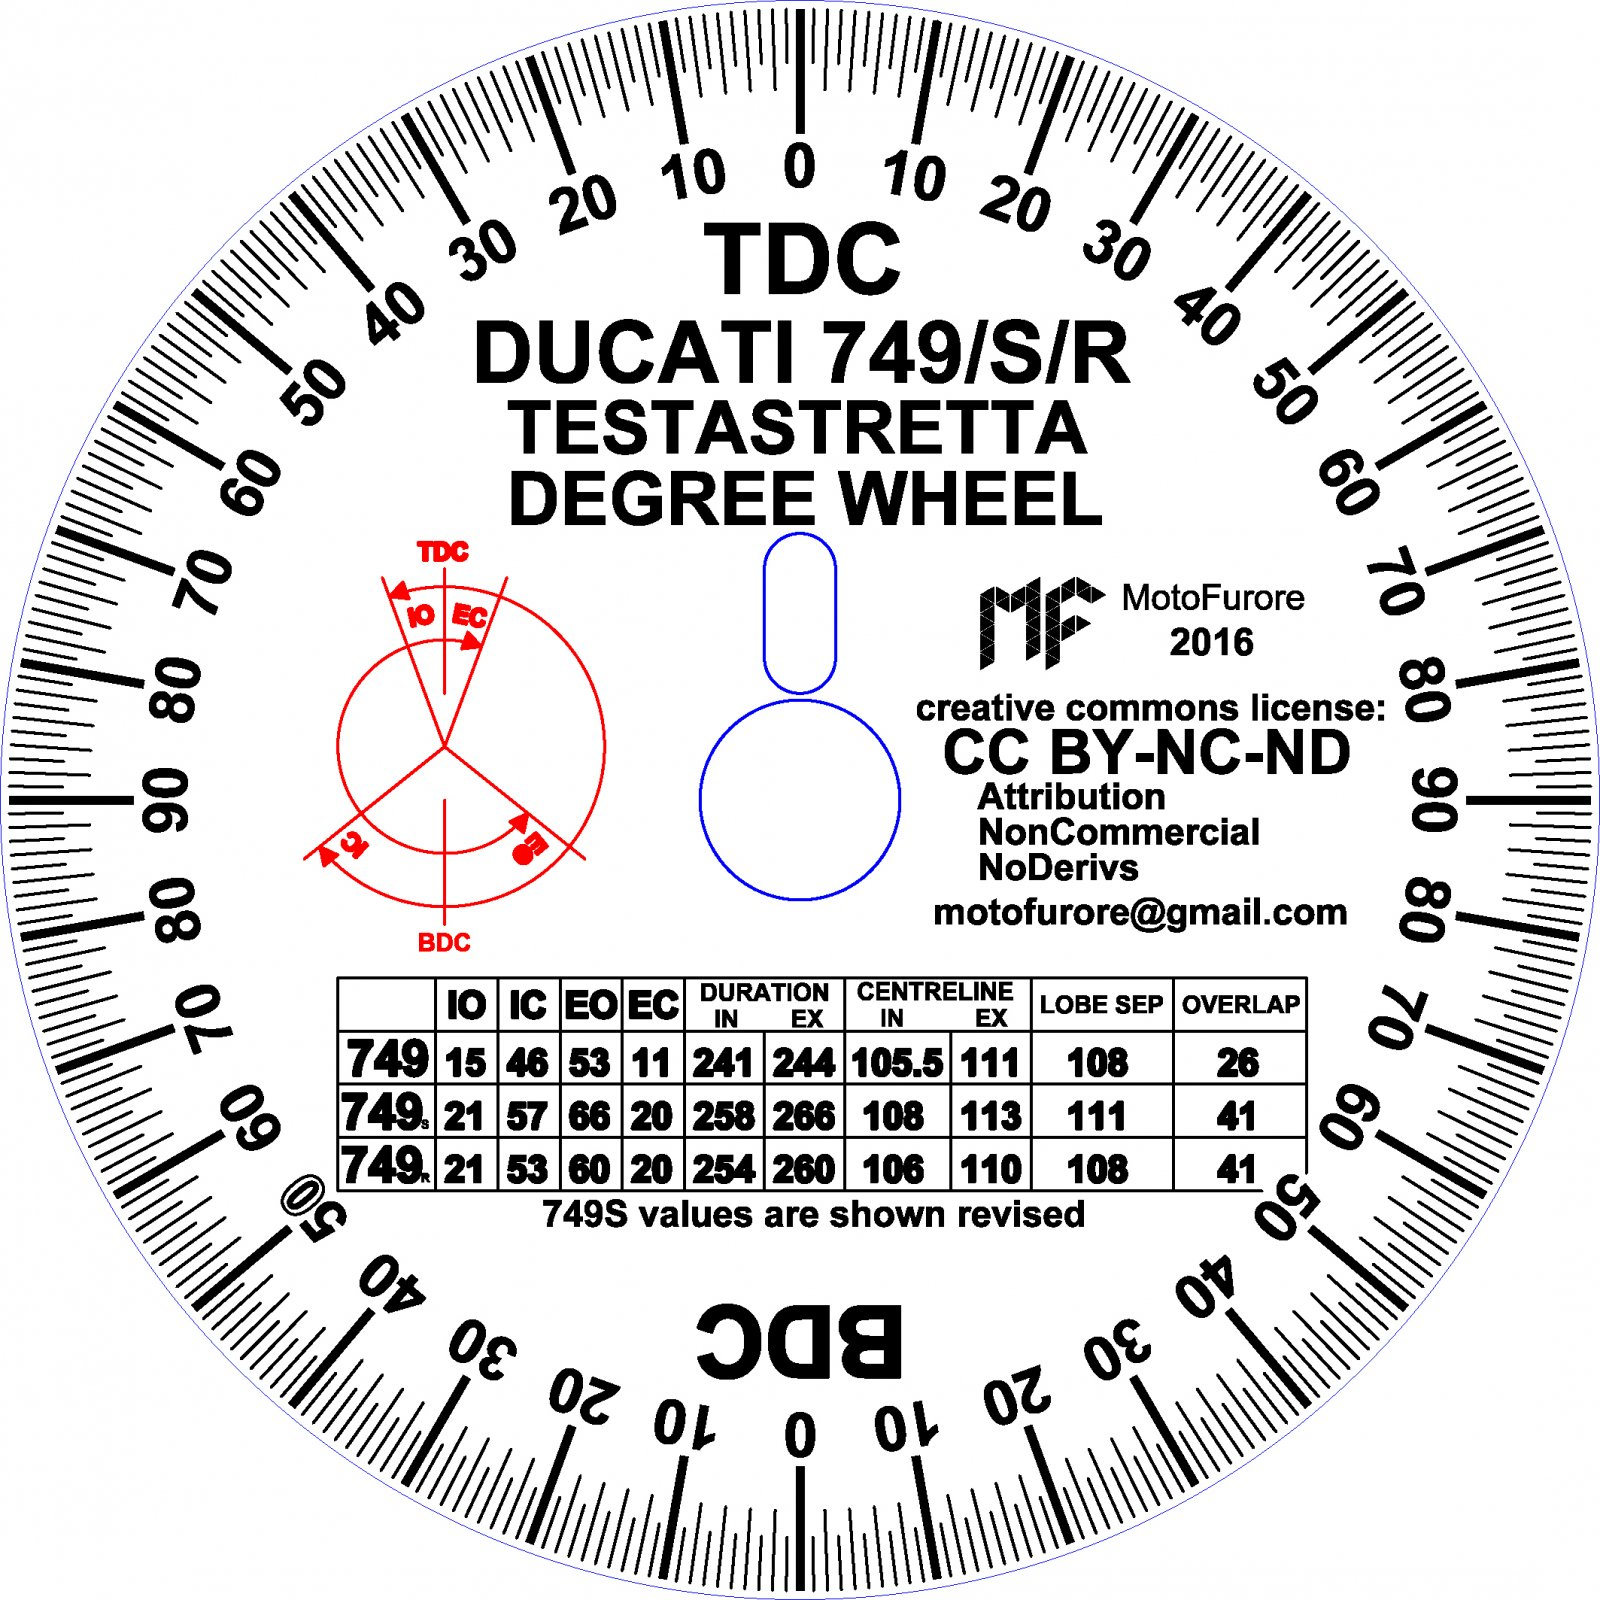 Ducati Timing Degree Wheel